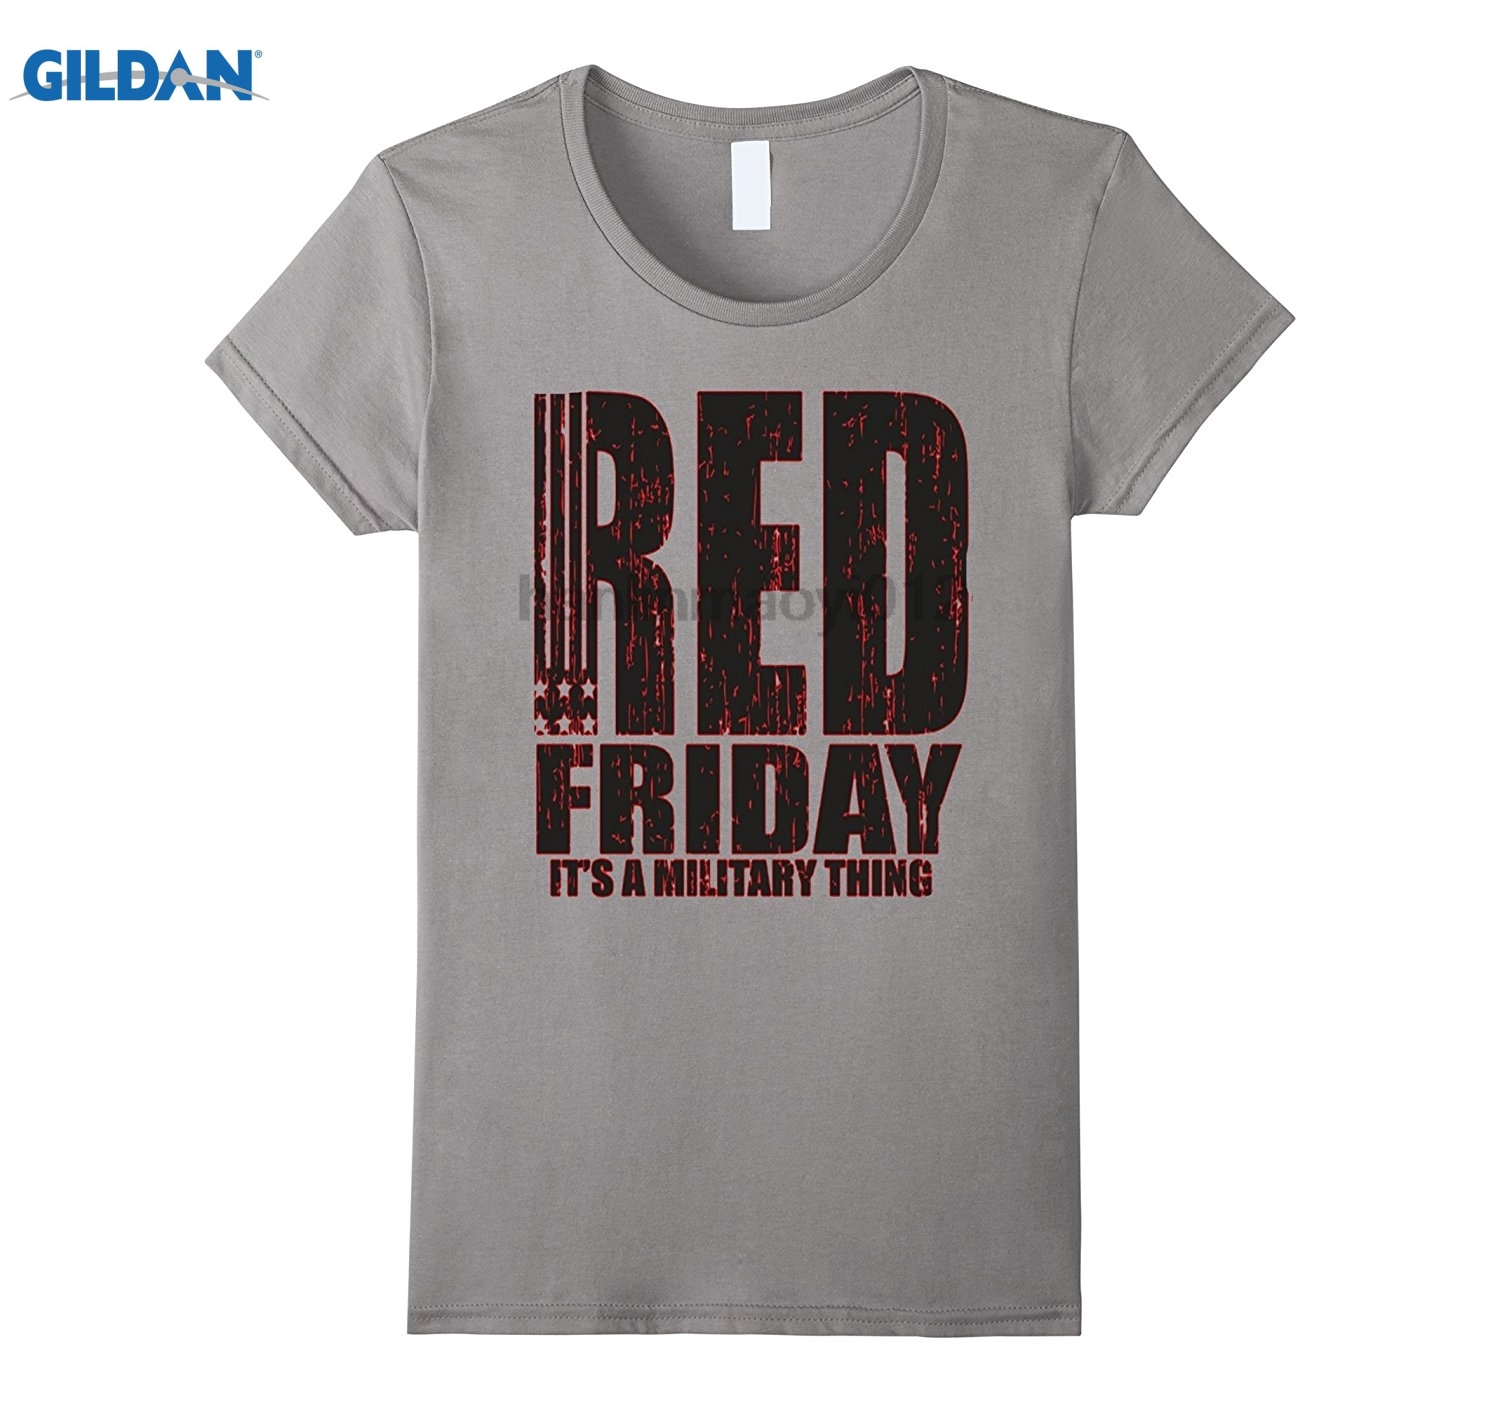 GILDAN R.E.D Friday T-shirt Hot Womens T-shirt ...